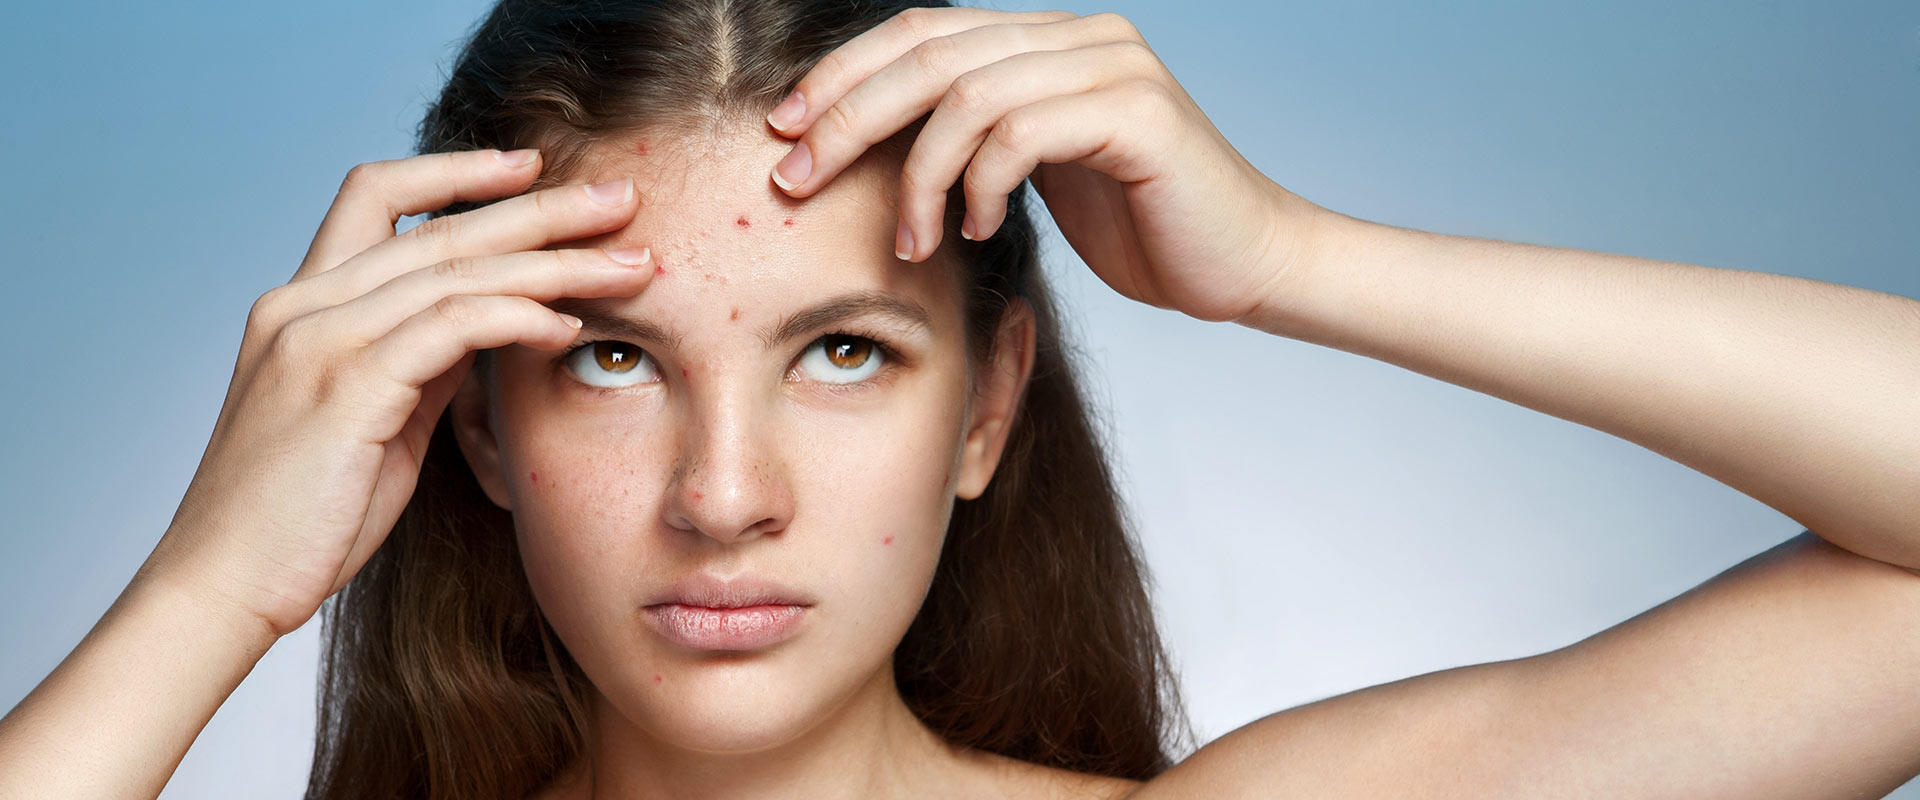 Banish the Blemish! Pinpointing Acne Causes | more.com